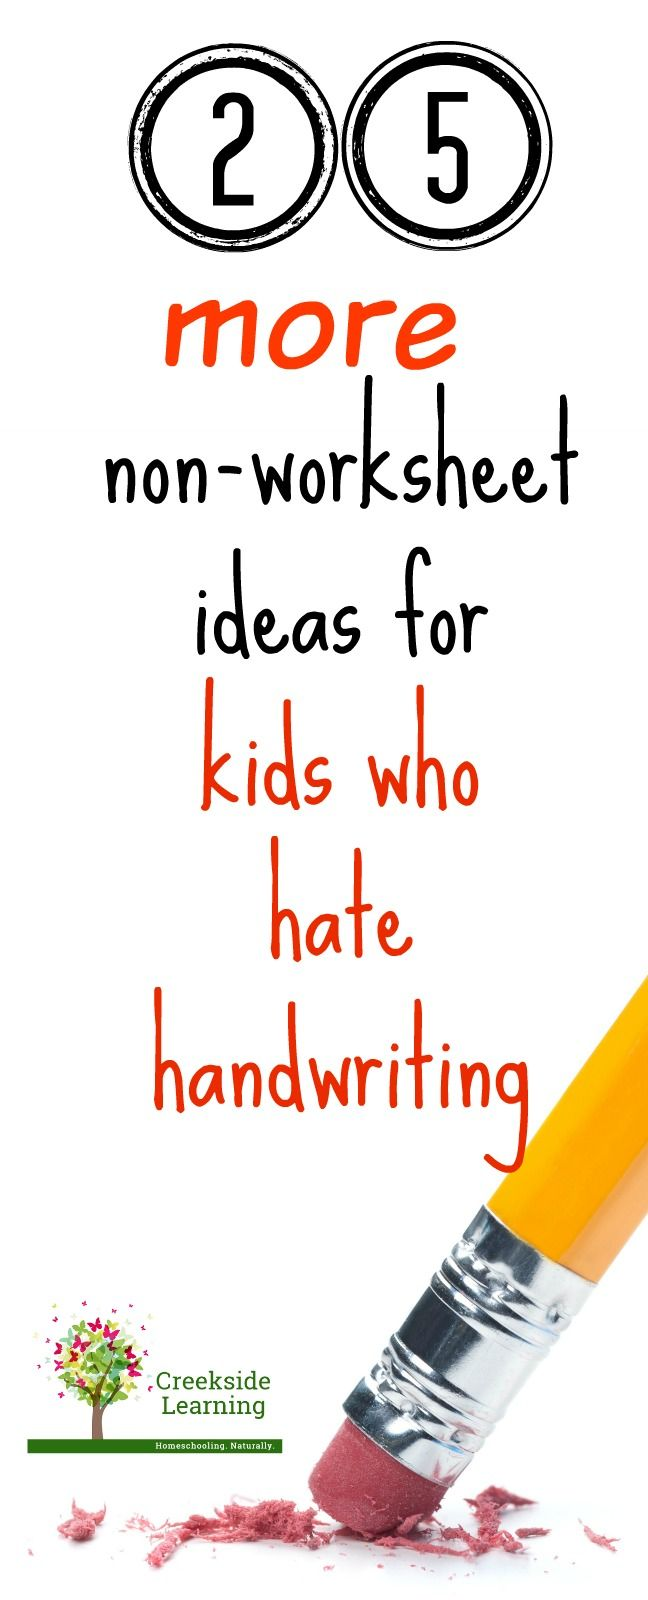 worksheet Tracing Worksheet Generator best 25 handwriting practice for kids ideas on pinterest more fun no worksheets